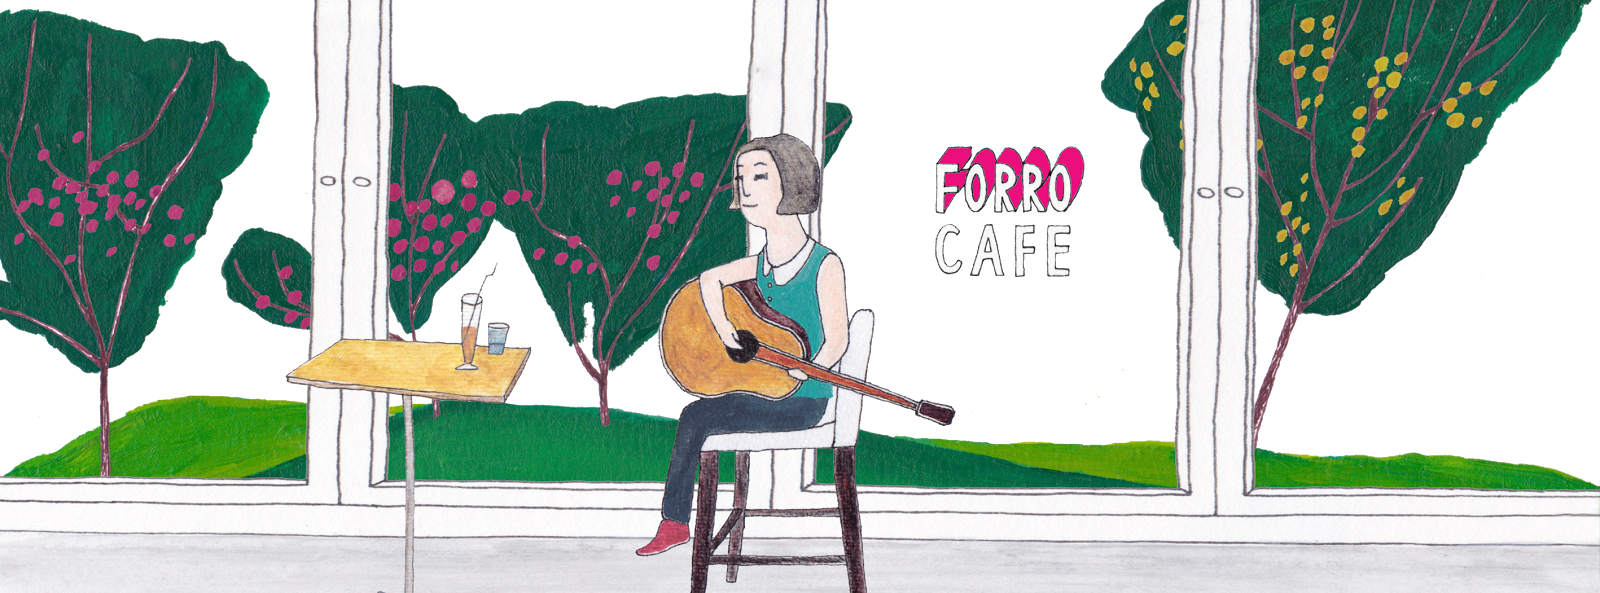  Forro Cafe